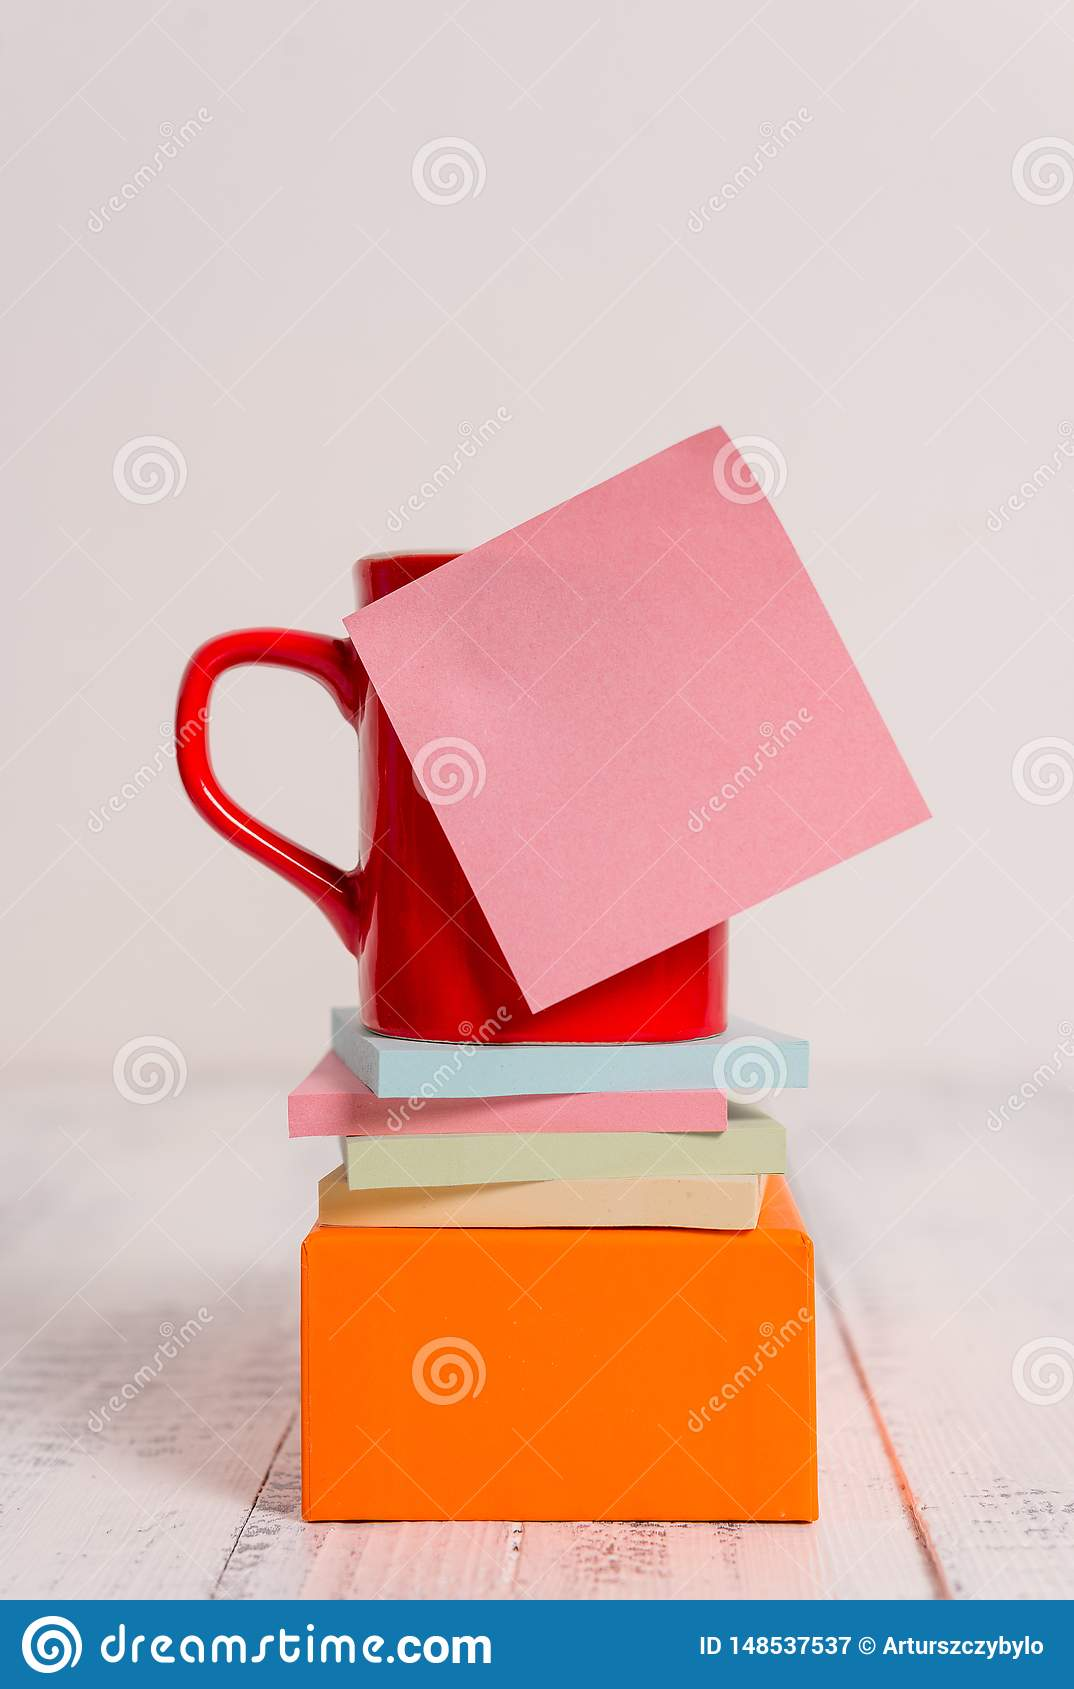 Front view coffee cup blank colored sticky note stacked note pads square box lying retro vintage rustic old table